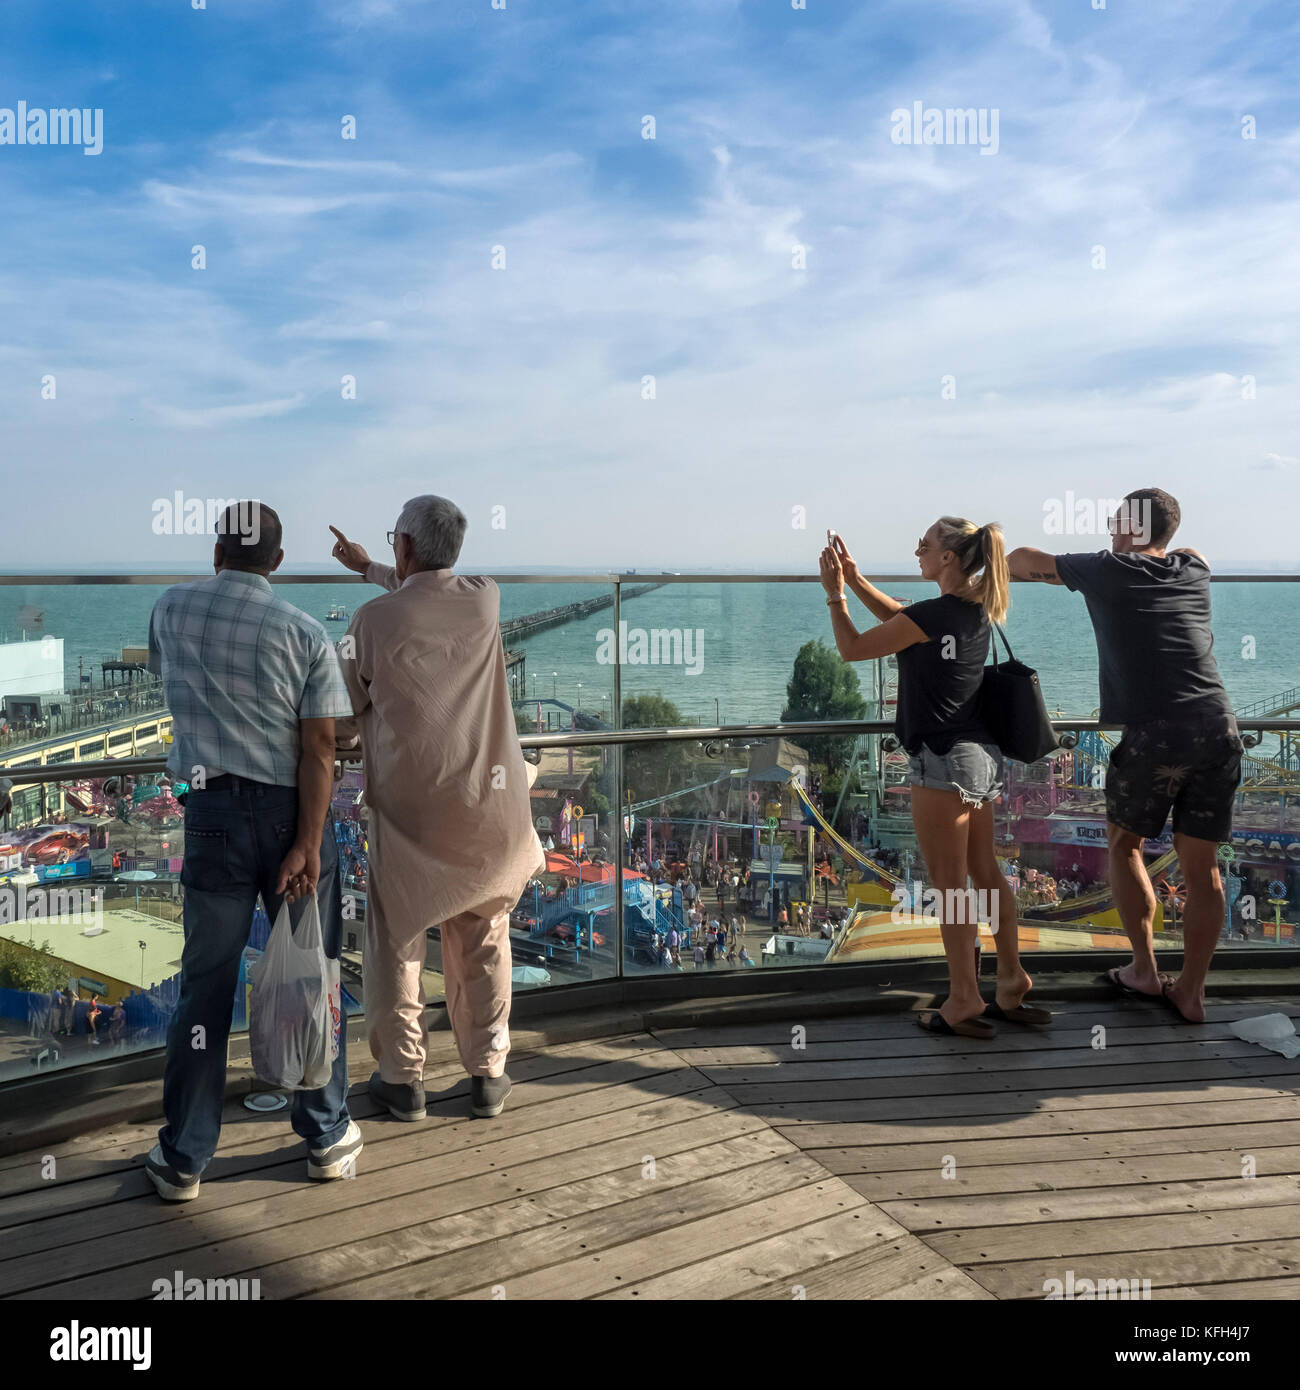 SOUTHEND-ON-SEA, ESSEX:  Visitors on the Seafront Observation Tower looking along the Seafront with the Pier in Stock Photo